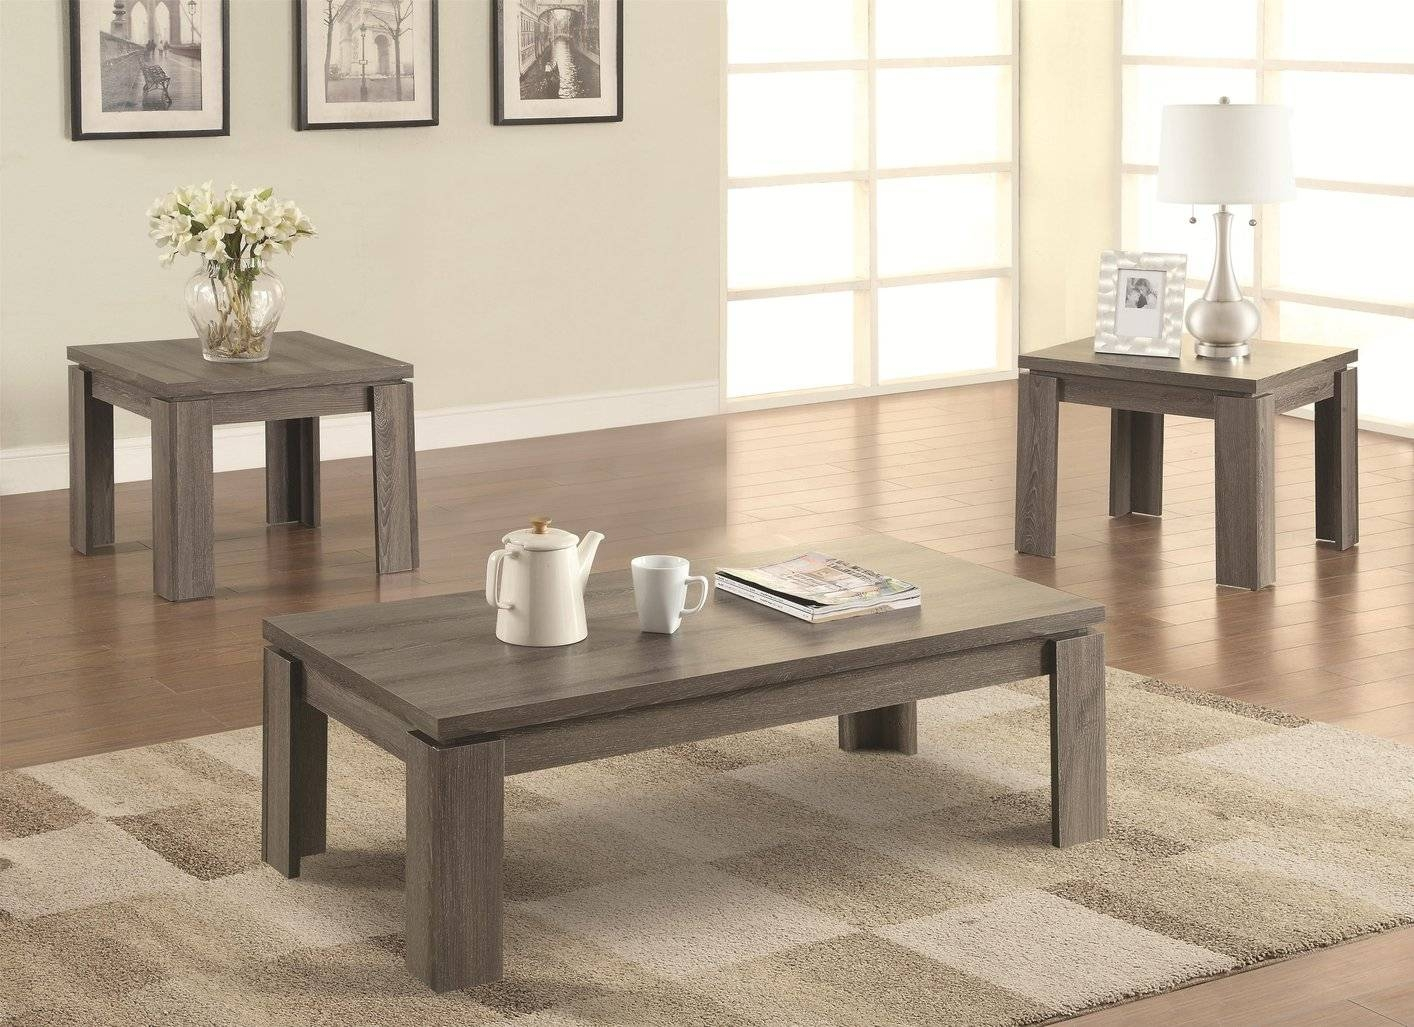 Grey Wood Coffee Table Set - Steal-A-Sofa Furniture Outlet Los for Chunky Wood Coffee Tables (Image 13 of 30)